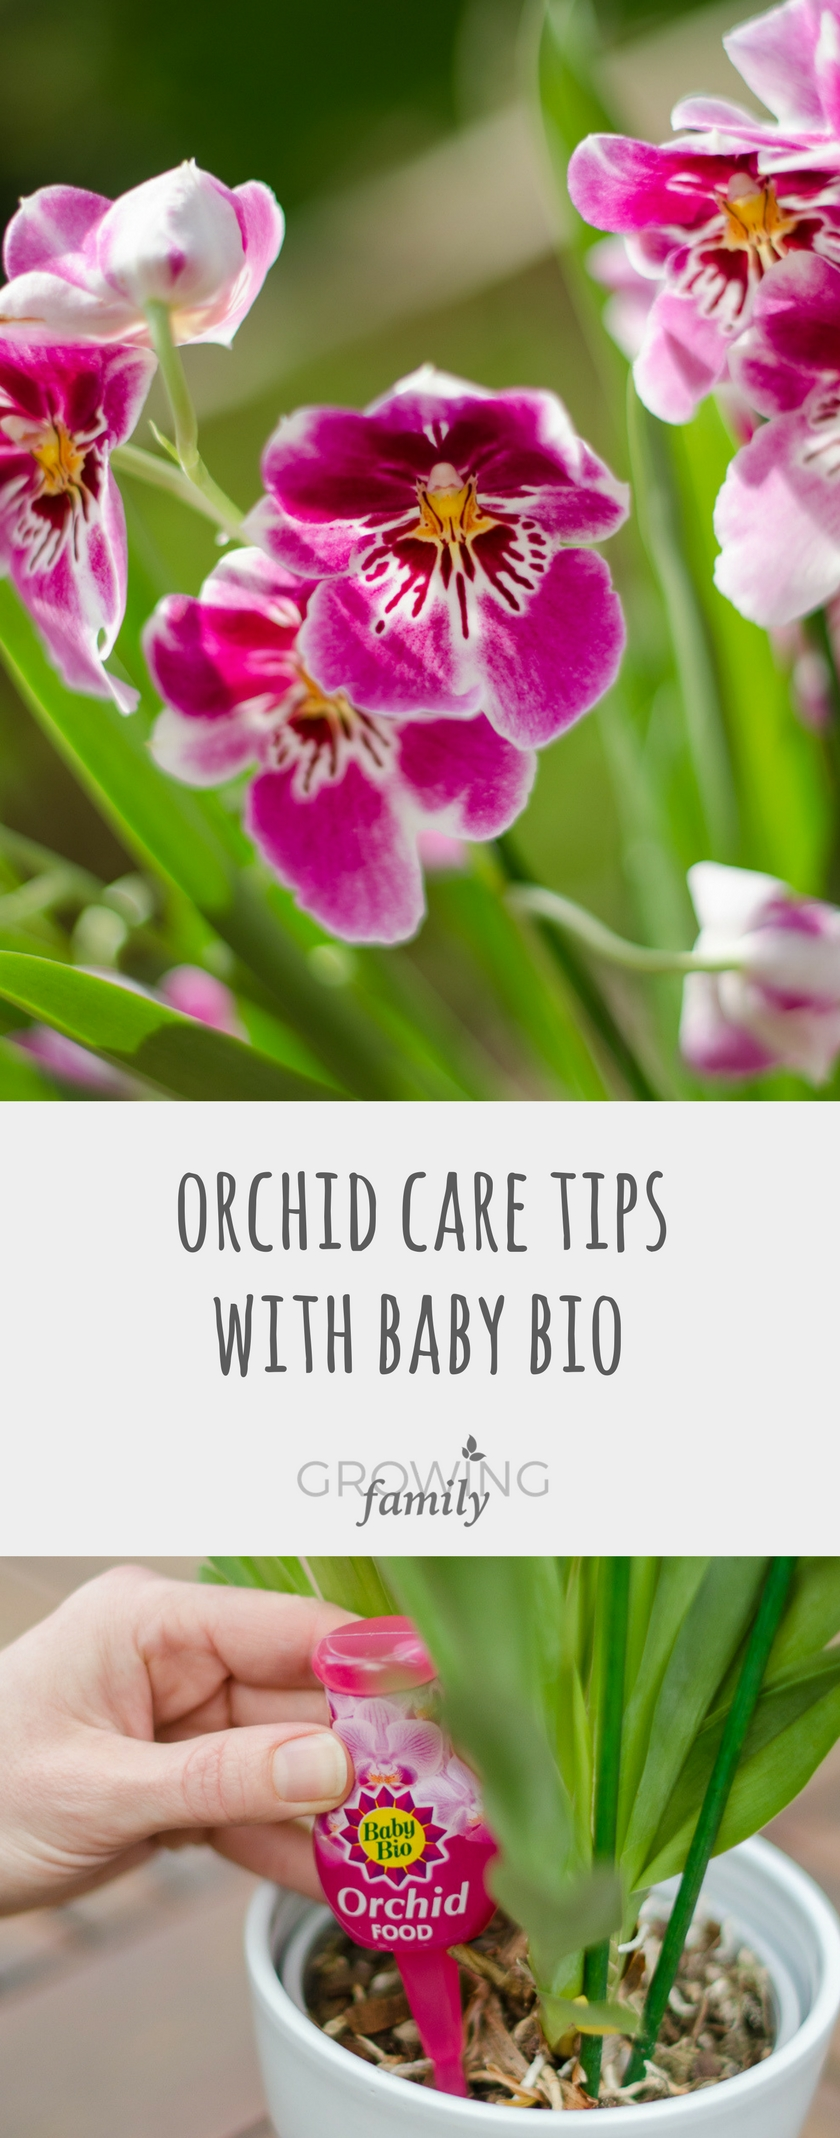 26159bc8e7698c Orchid care tips with Baby Bio - Growing Family